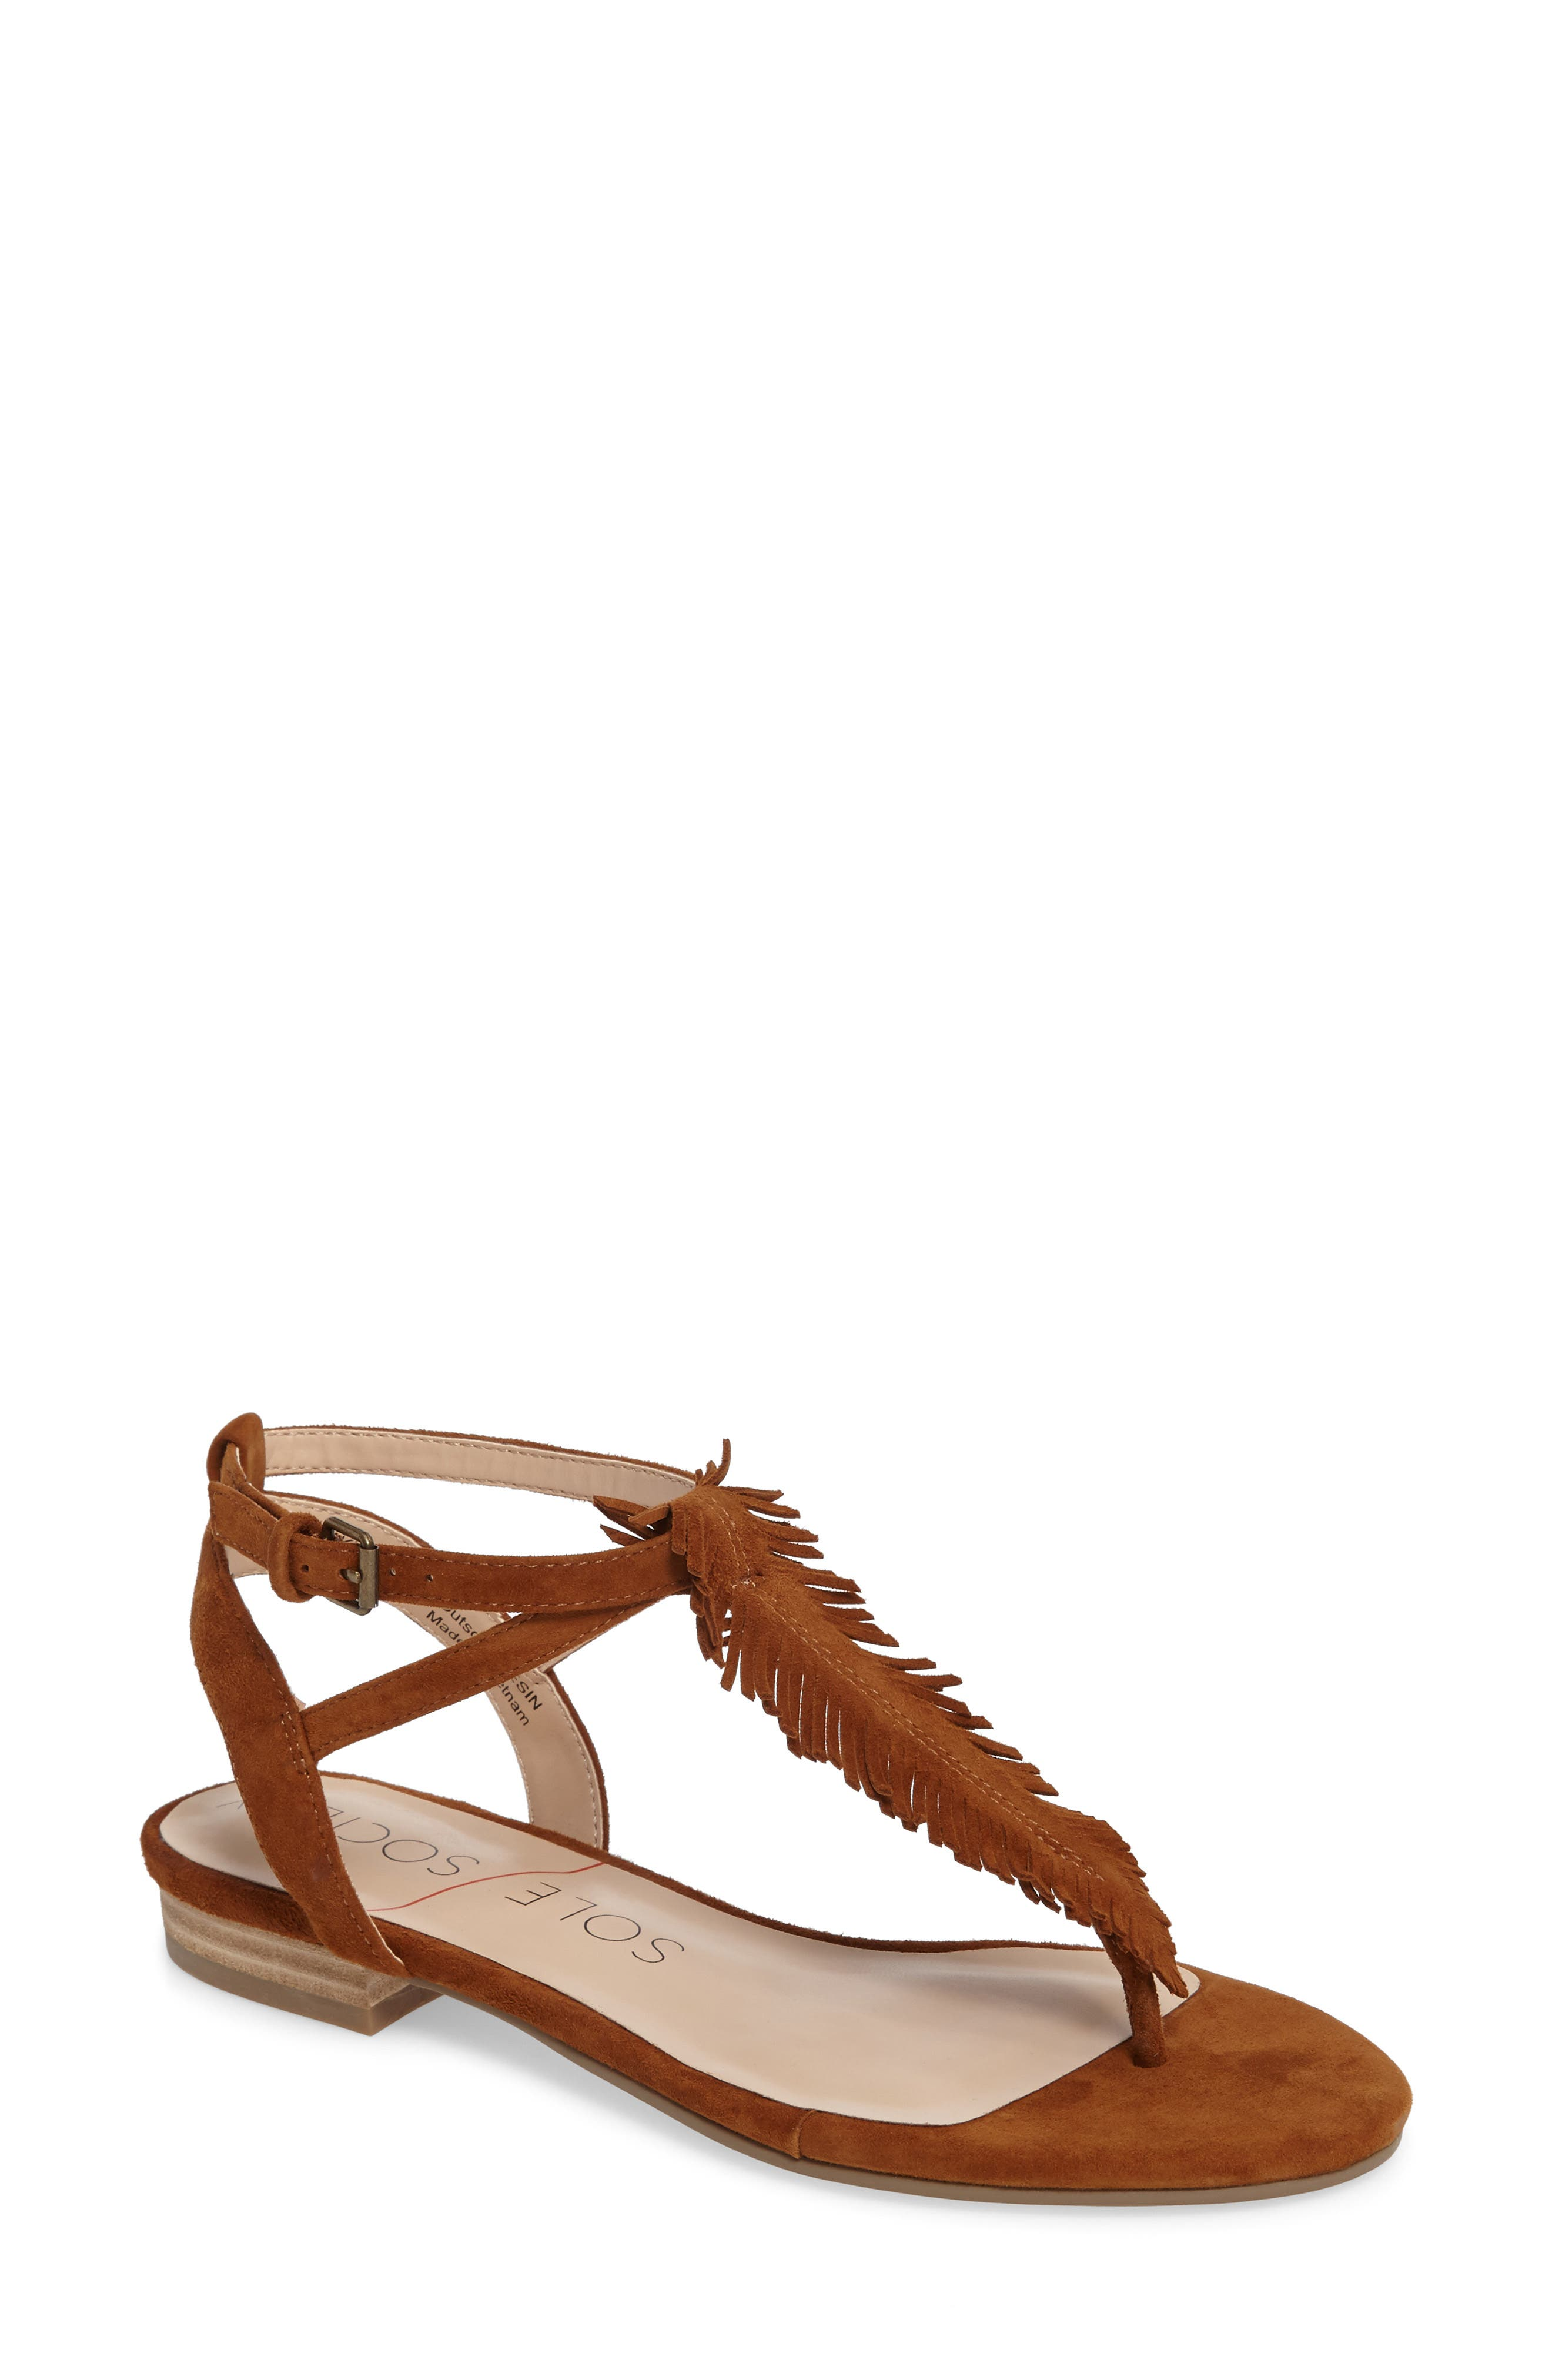 Mara Fringe Thong Sandal,                         Main,                         color, 210